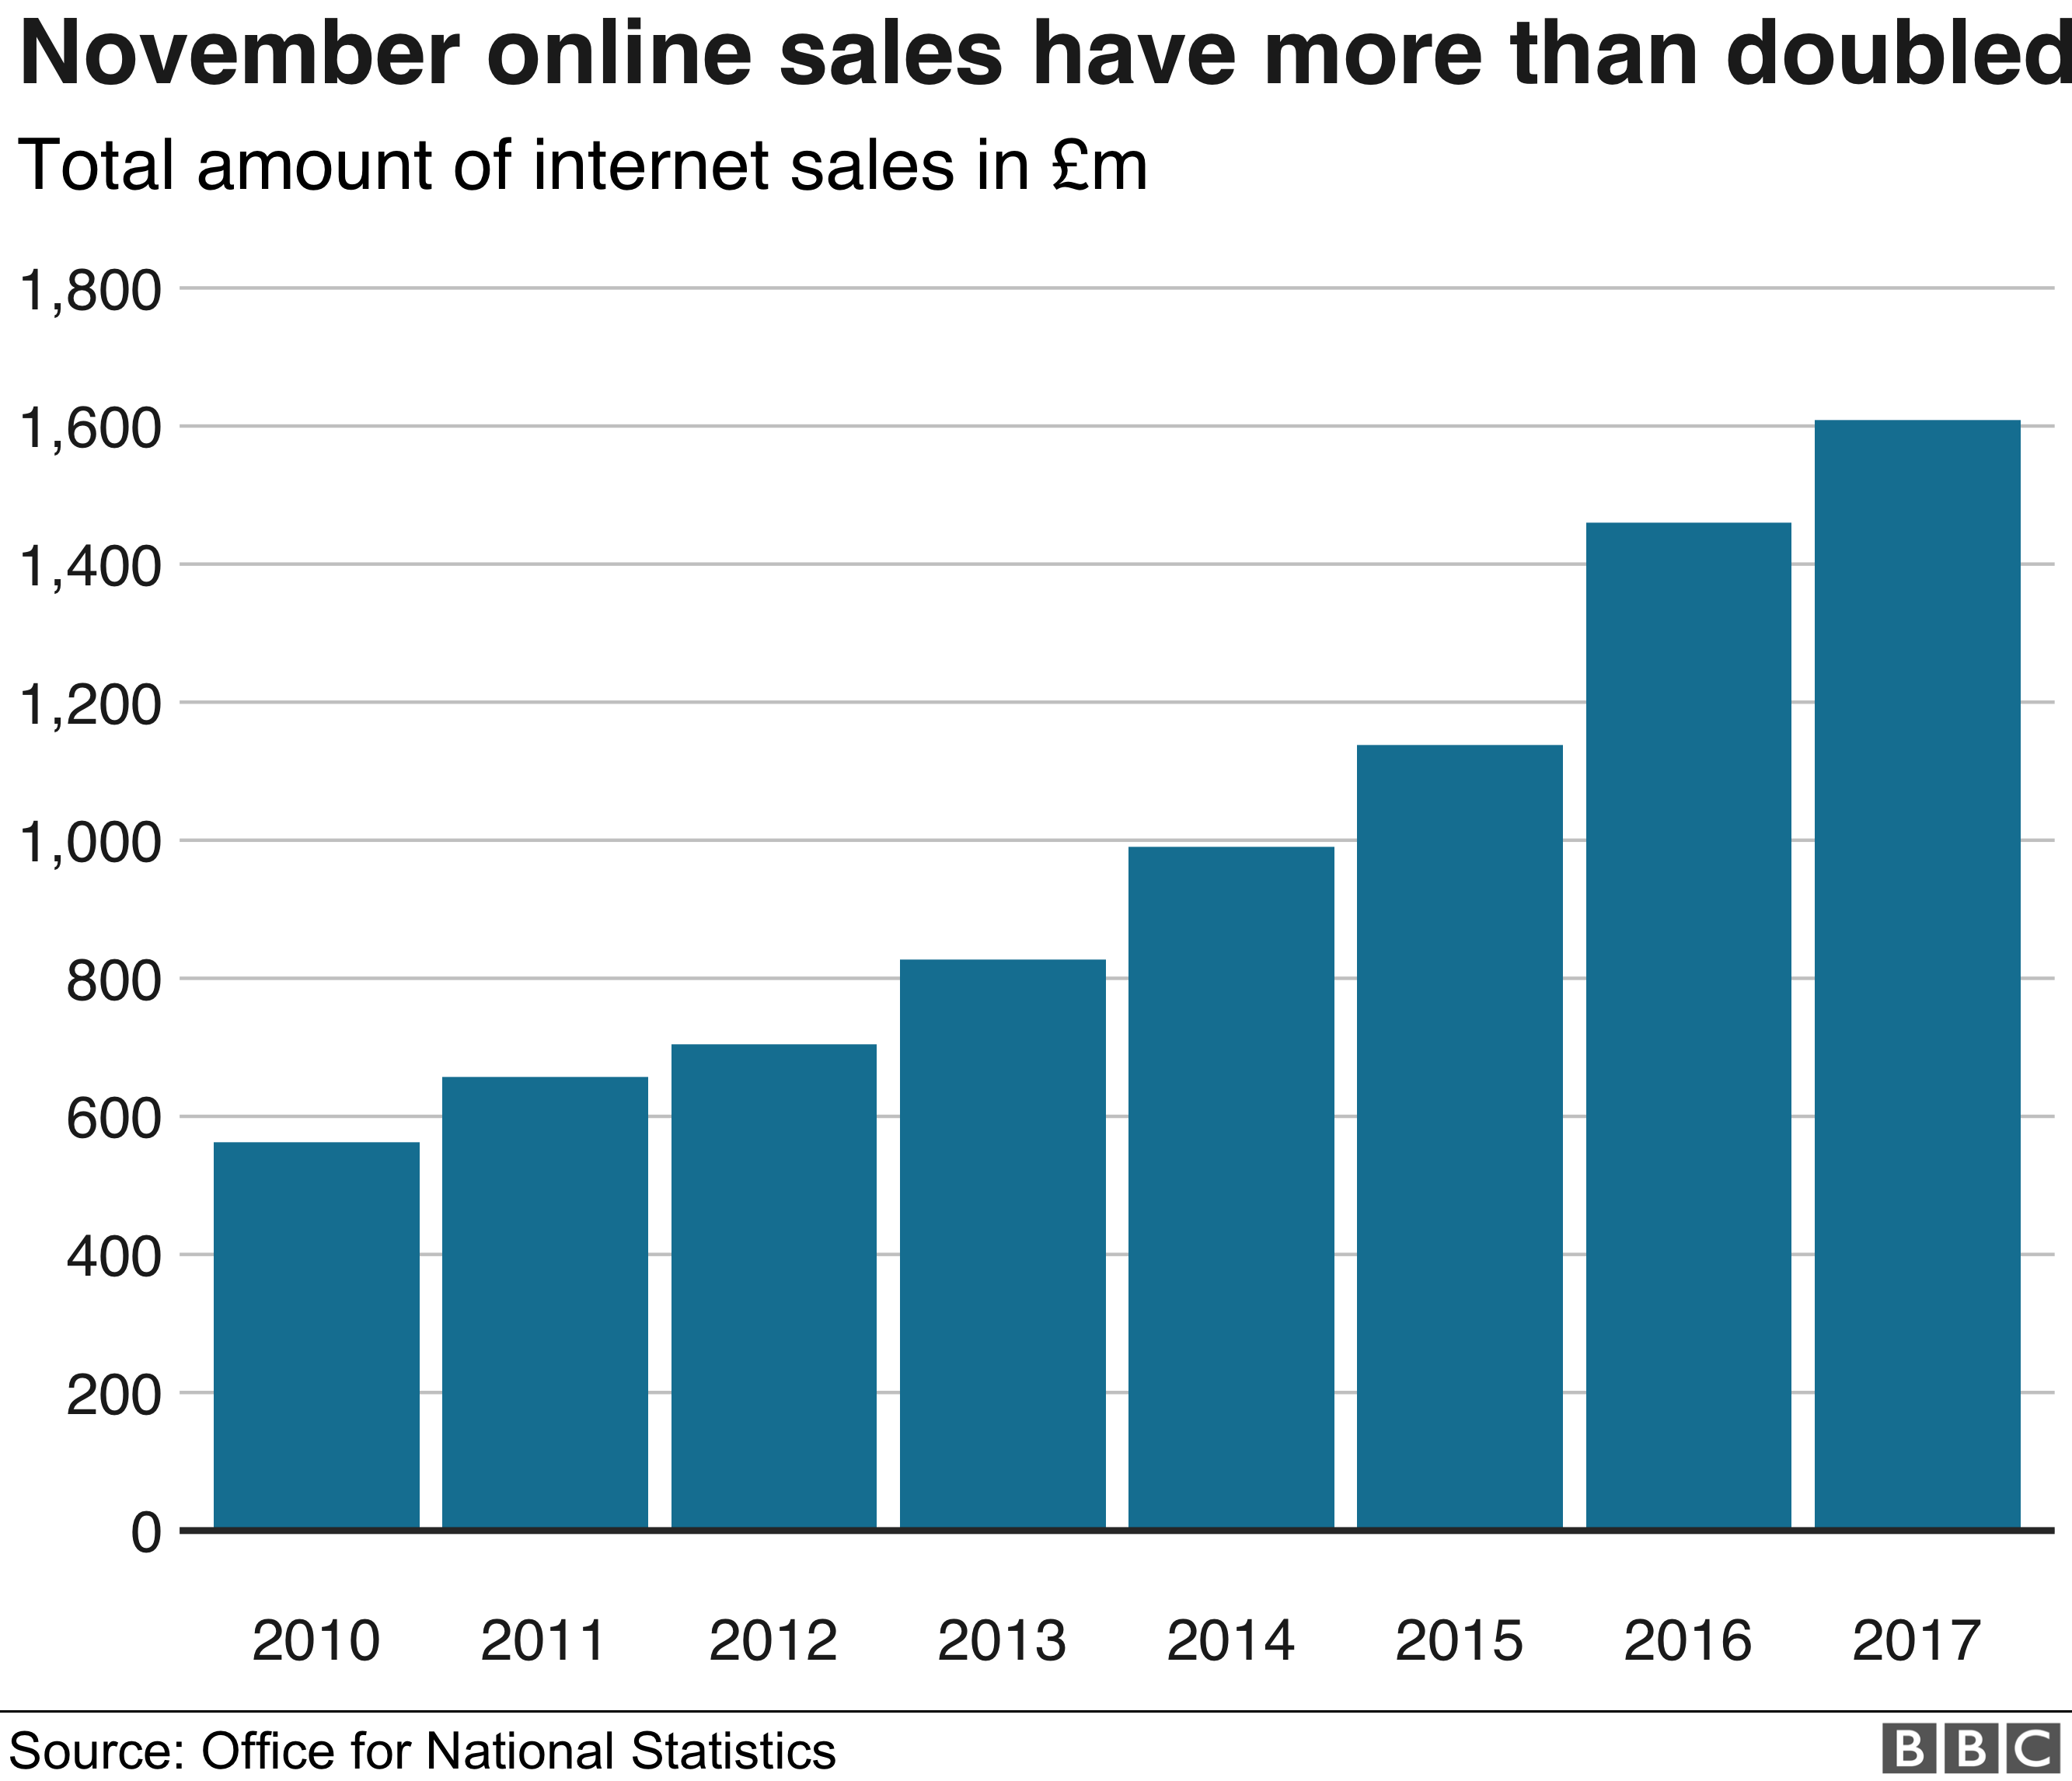 Chart showing the total amount of internet sales in £m from November 2010 to 2017.